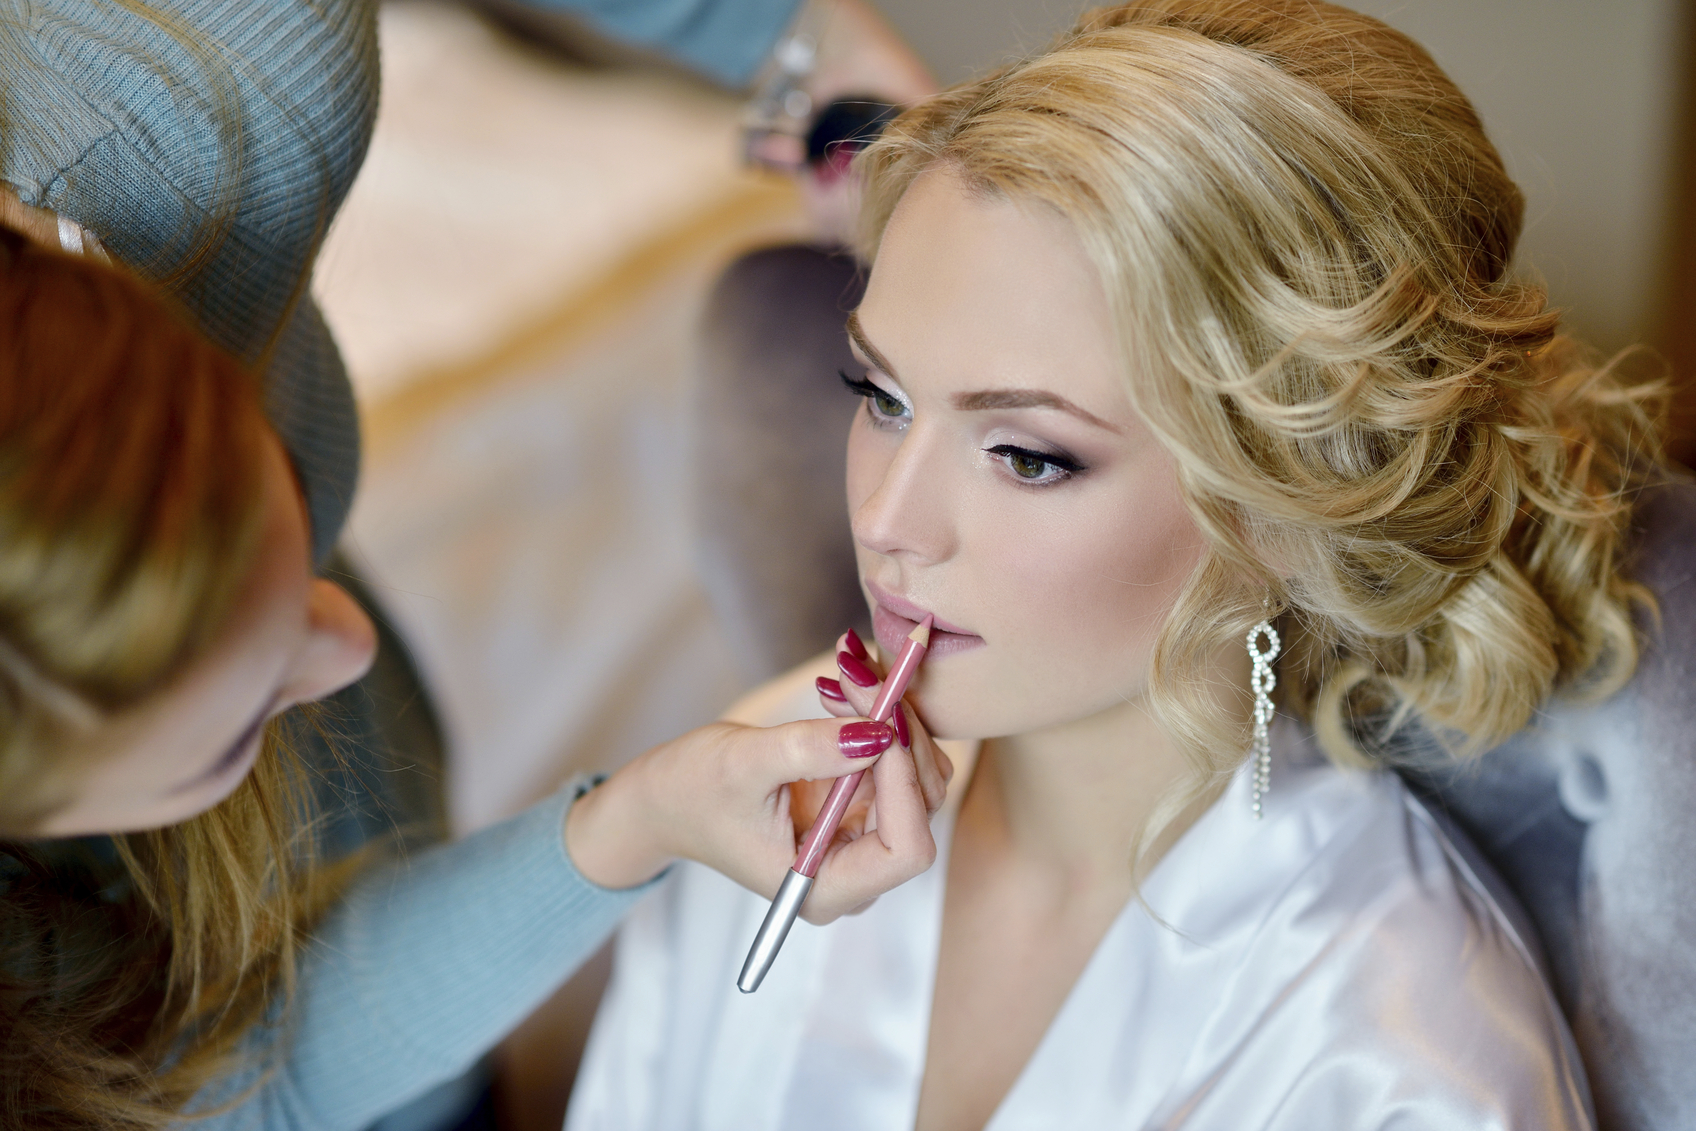 Reasons To Hire A Professional Hair And Makeup Artist For